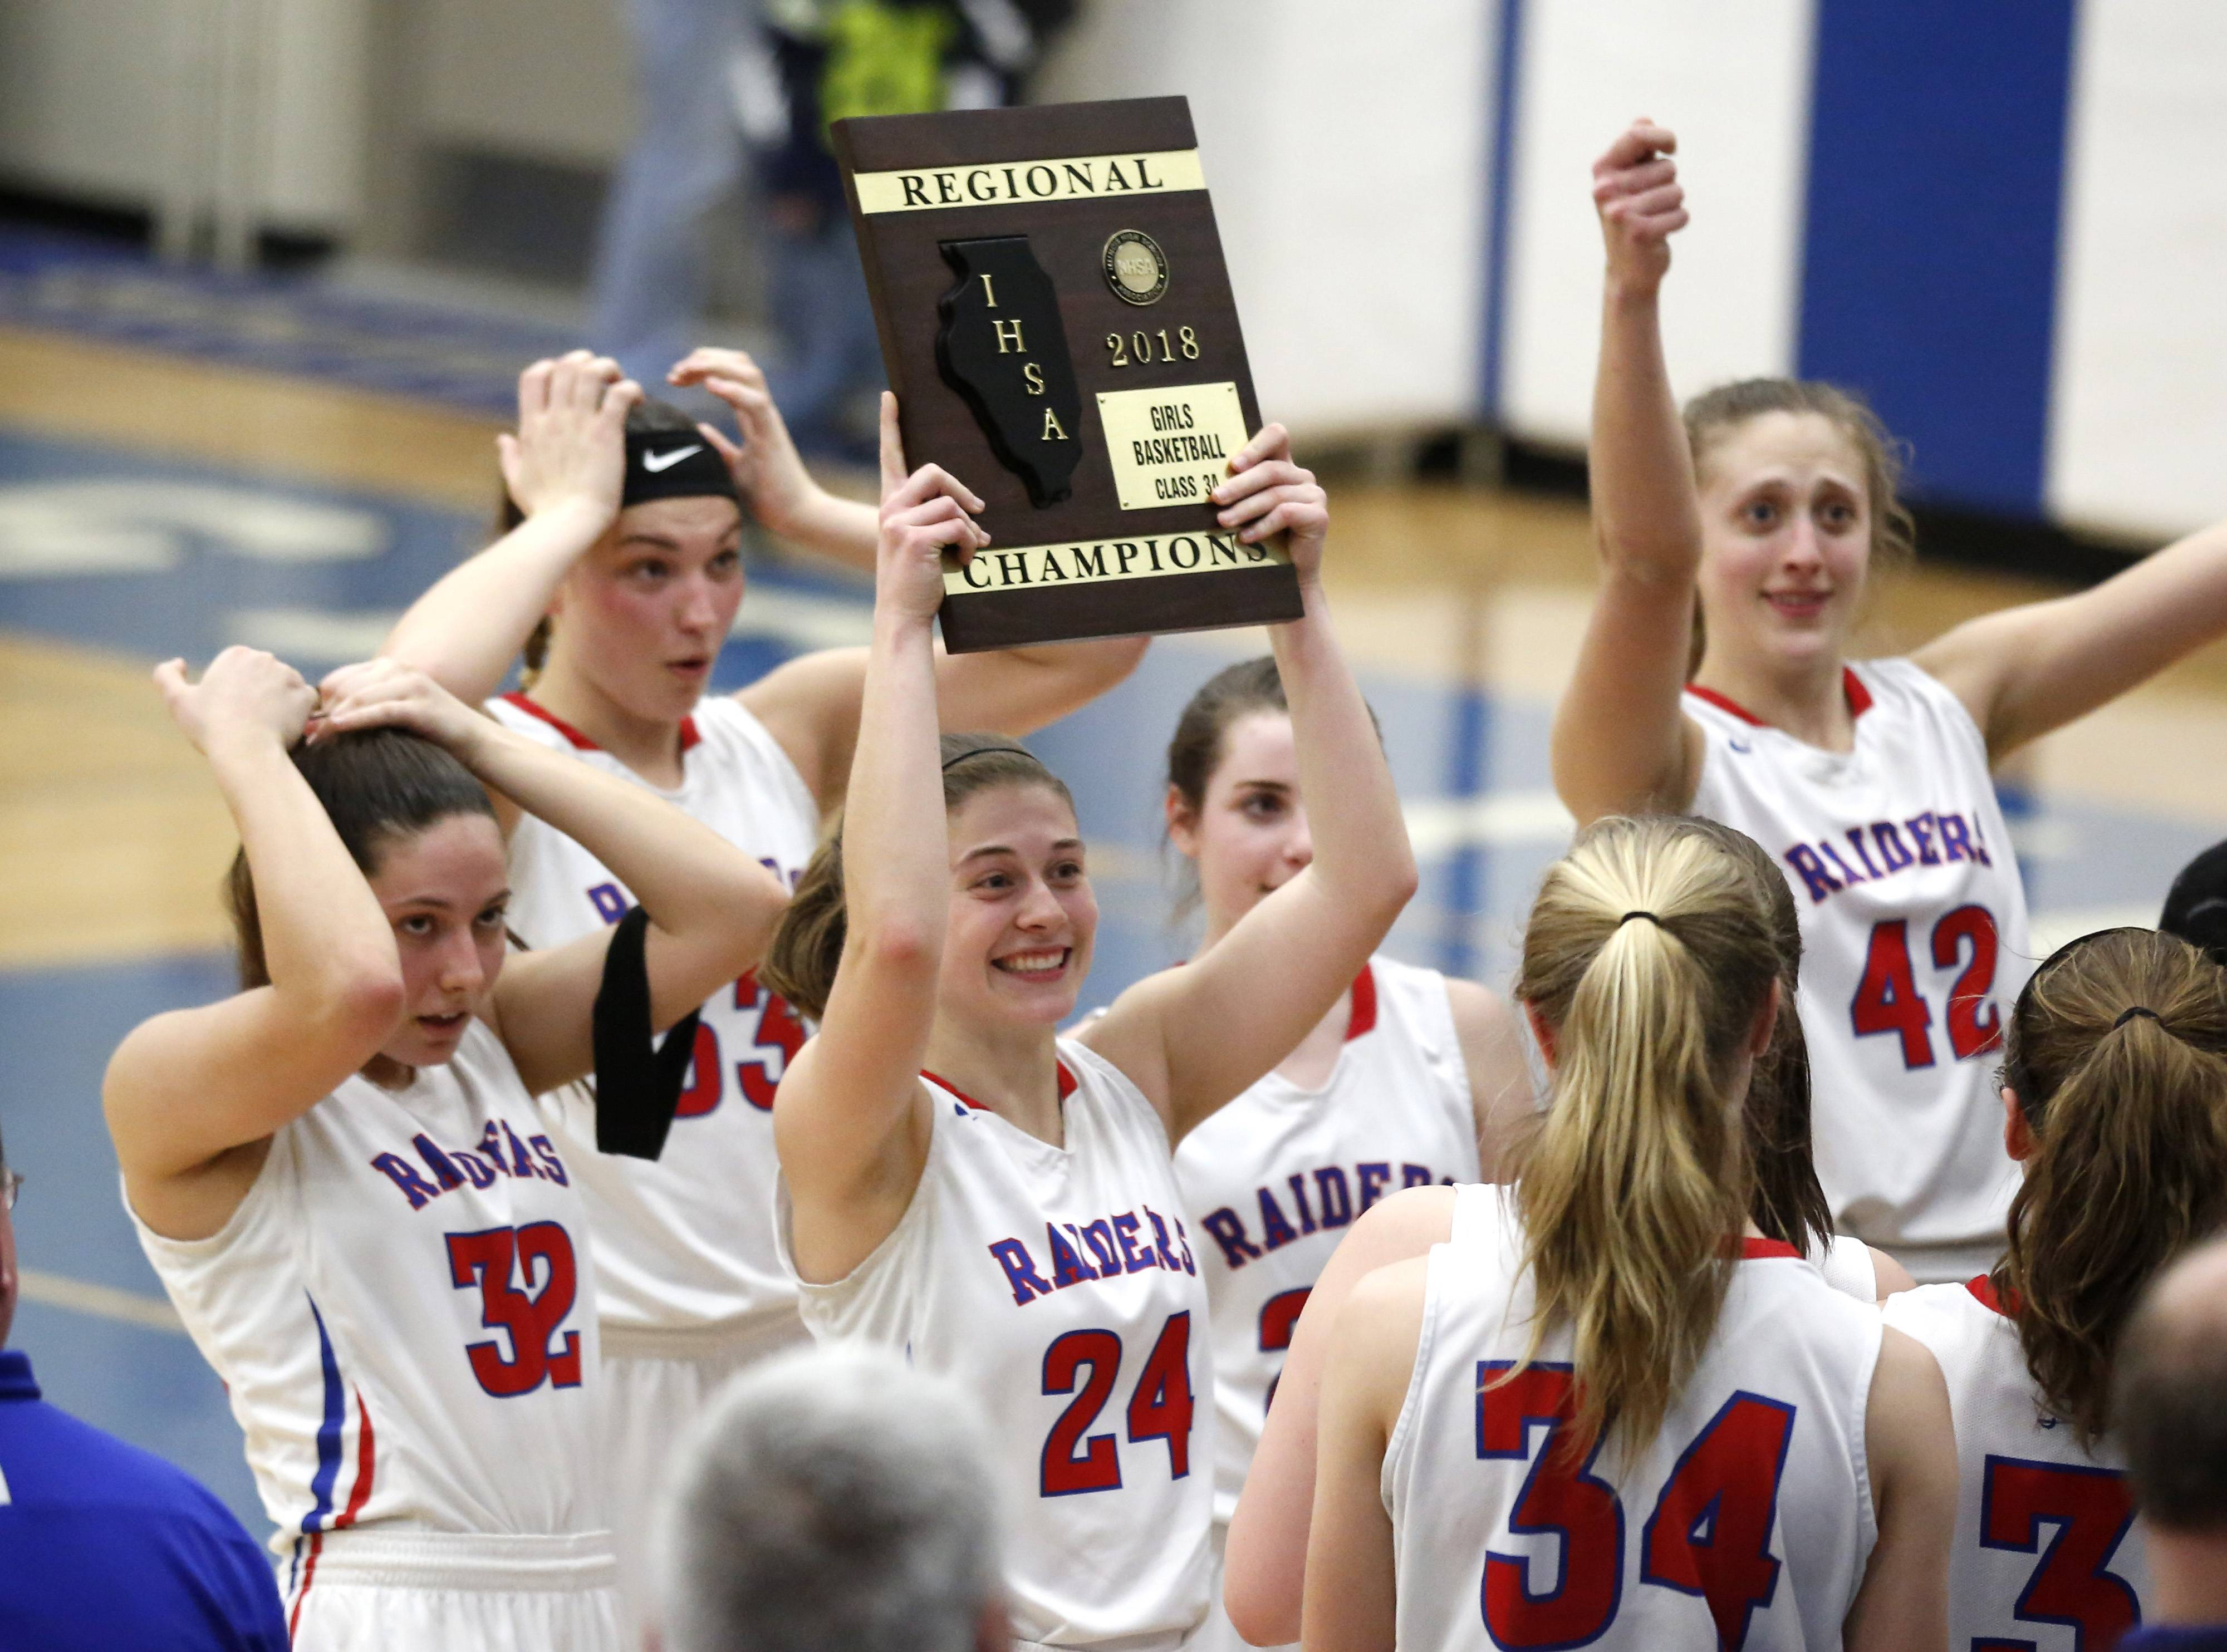 Glenbard South's Sarah Cohen (24) holds up the Class 3A girls basketball championship plaque after defeating St. Francis 51-39 in Wheaton.